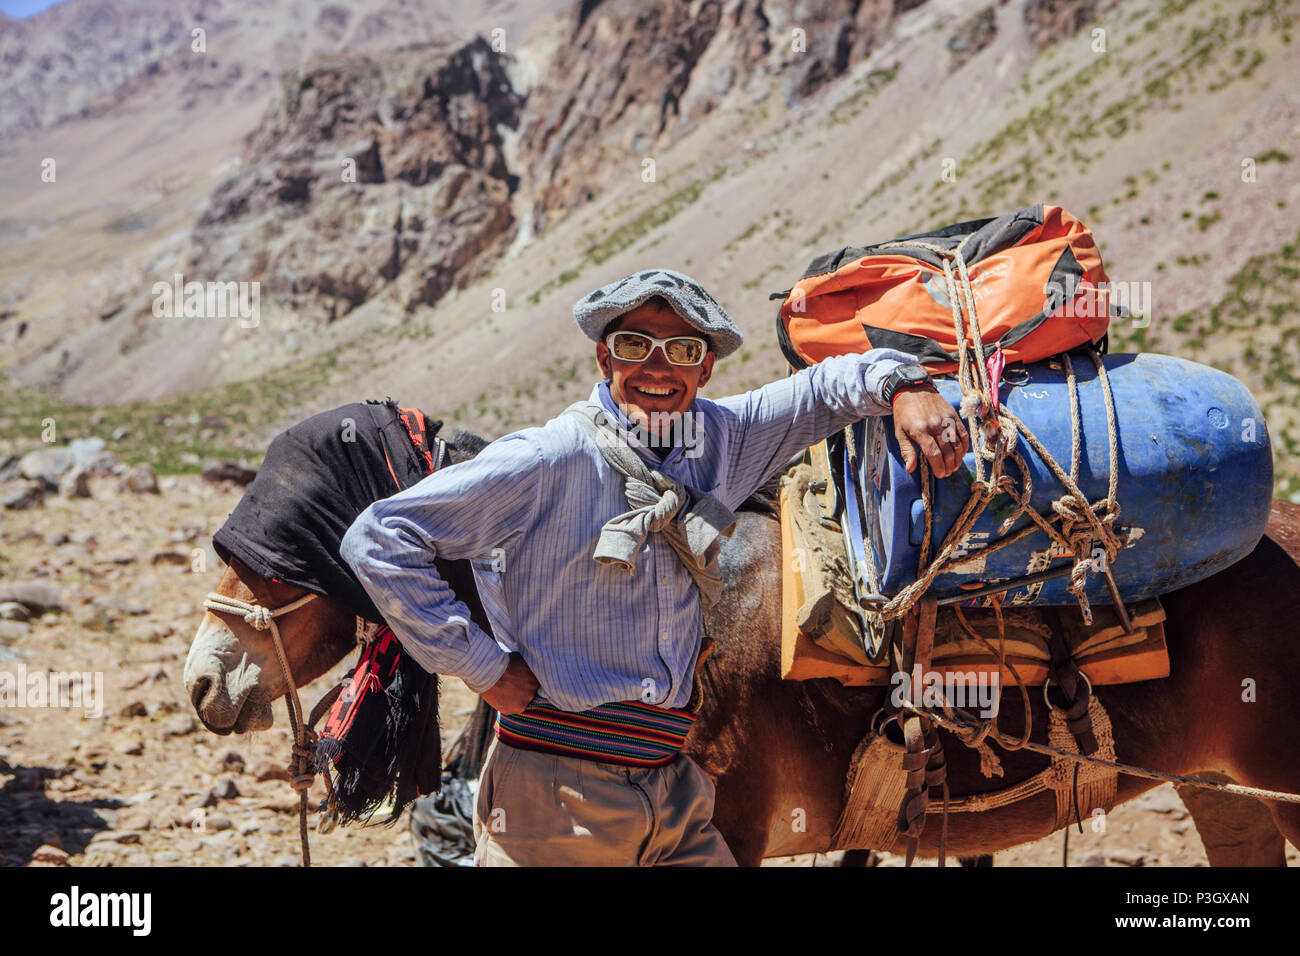 Argentina cowboys supervising mule train of supplies along trail to base camp on Aconcagua, Mendoza, Argentina - Stock Image